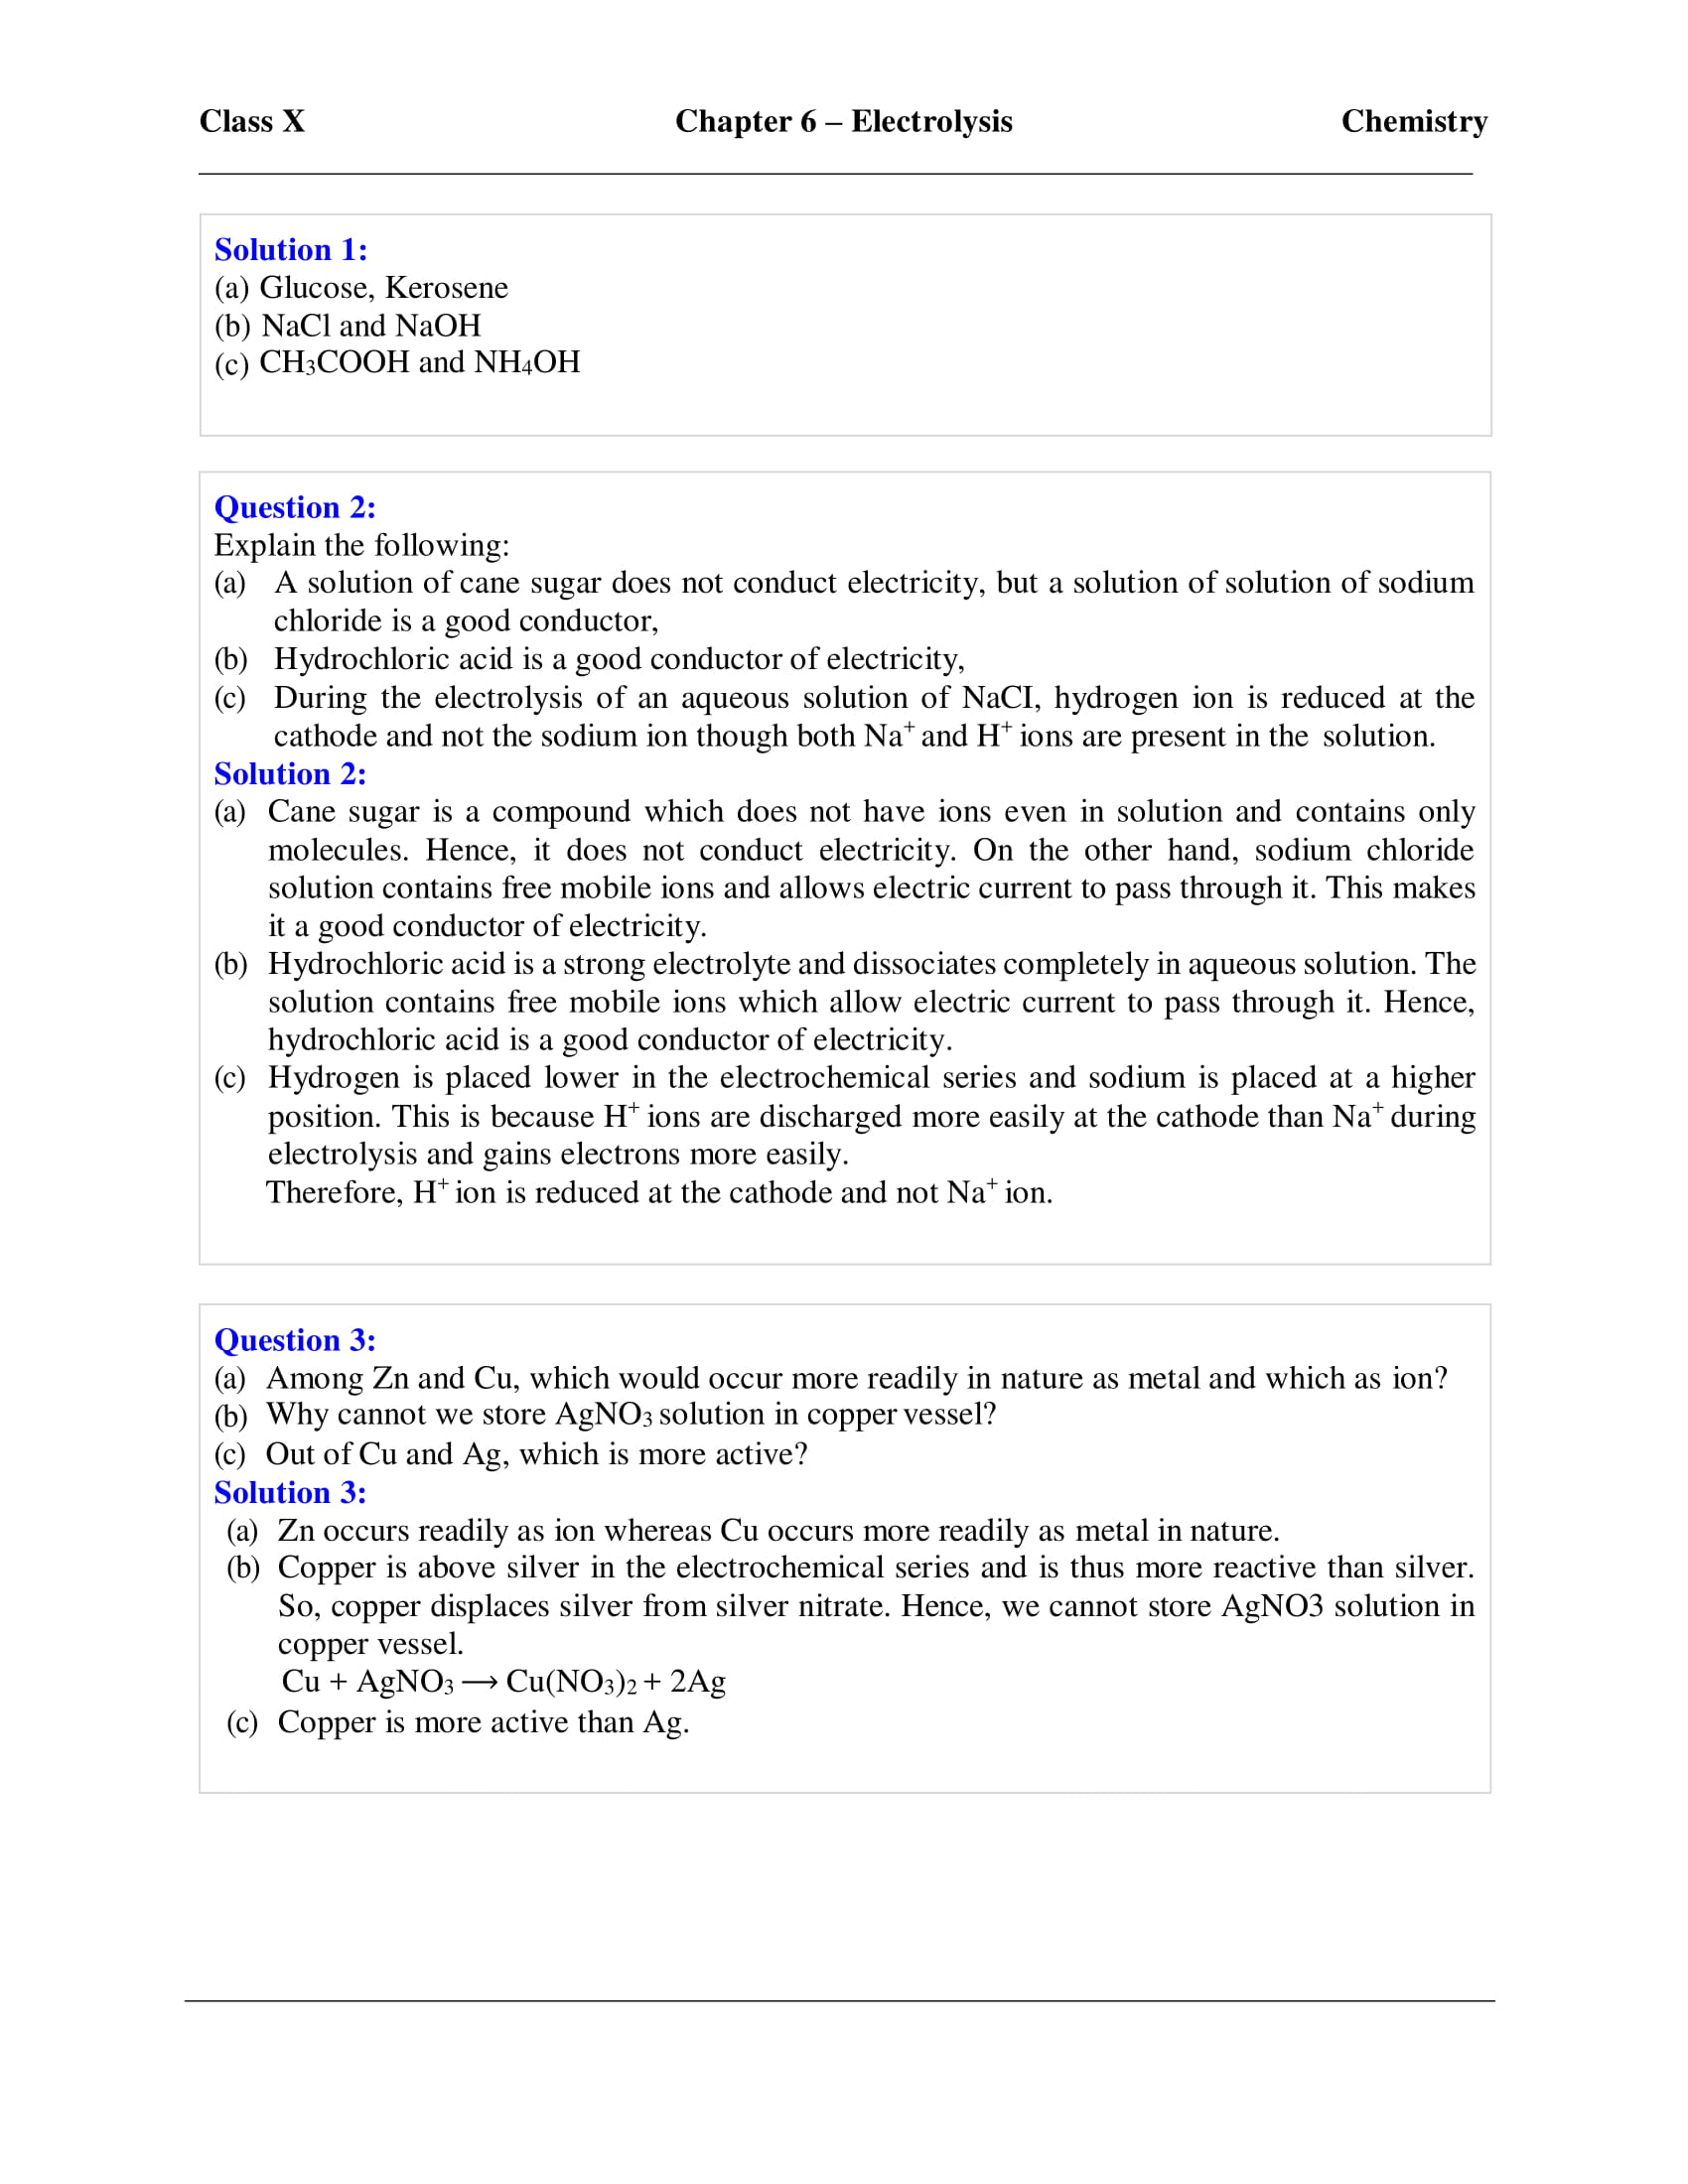 icse-selina-chemistry-solutions-class-10-chapter-6-electrolysis-04